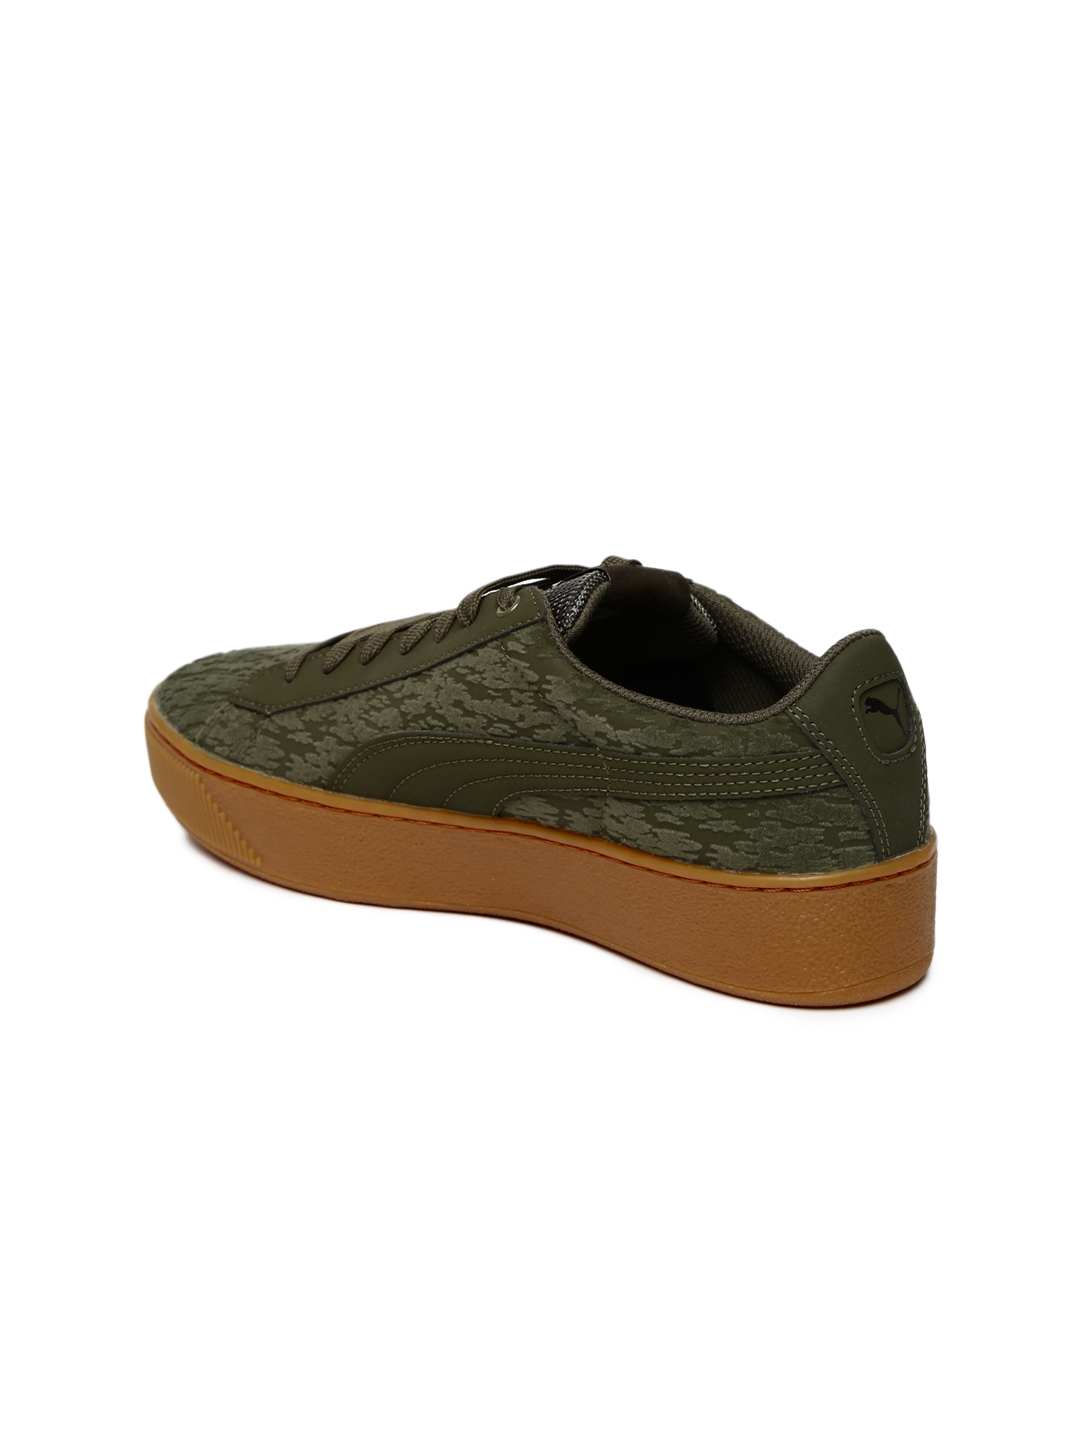 f0321f1a5626 Buy Puma Women Olive Green Vikky Platform VR Sneakers - Casual Shoes ...